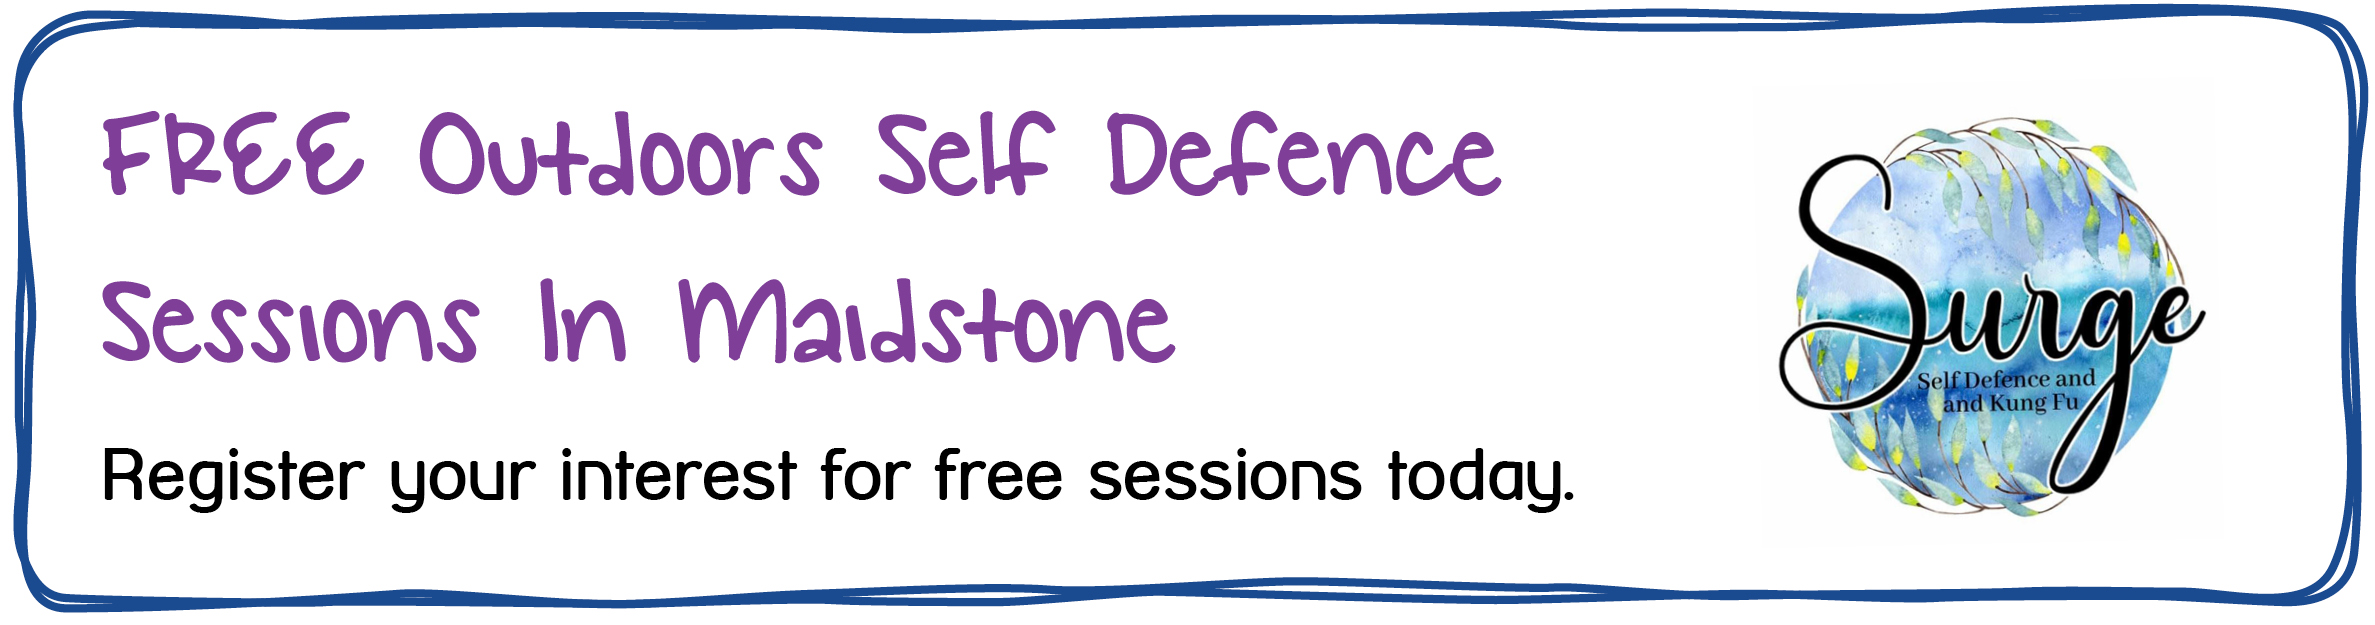 Self Defence Maidstone - FREE Outdoors Self Defense Sessions in Maidstone. Register your interest for free sessions today.